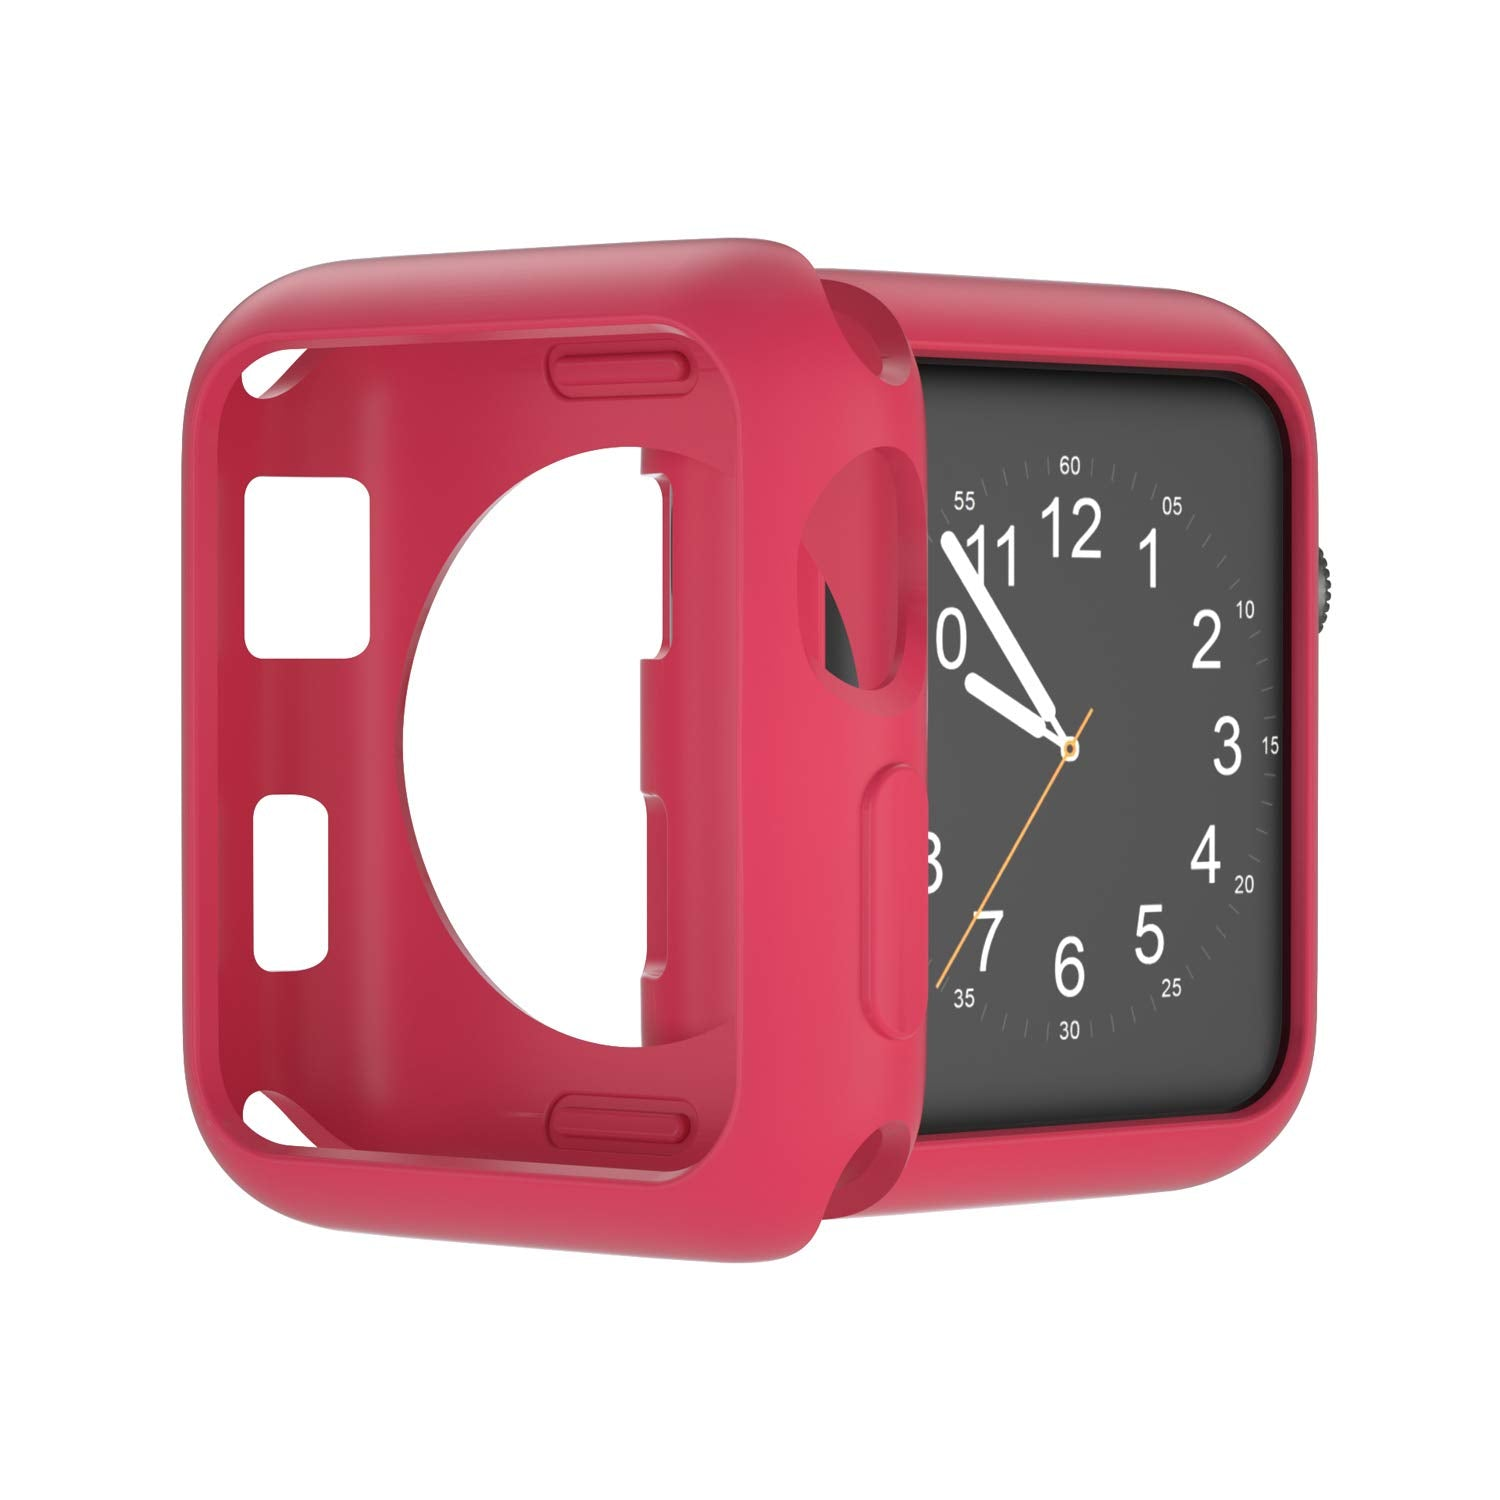 U191U Compatible with Apple Watch Case 38mm 42mm 40mm 44mm, Soft TPU Shockproof and Shatter-Resistant Protective Bumper Cover iwatch Series 5 4 3 2 Case (Red, 38mm Series 2/3)